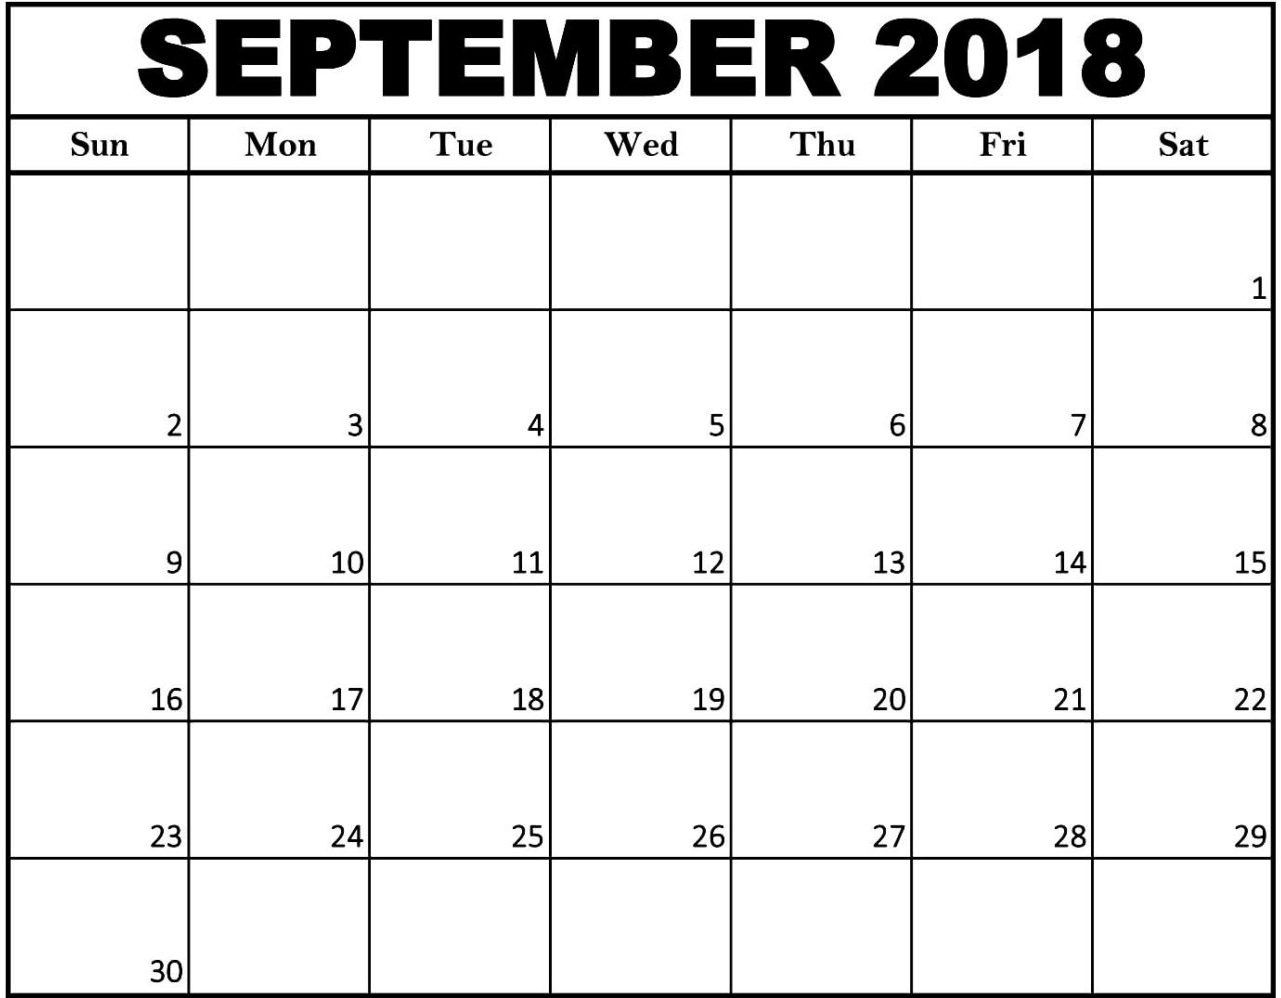 blank september 2018 calendar editable table